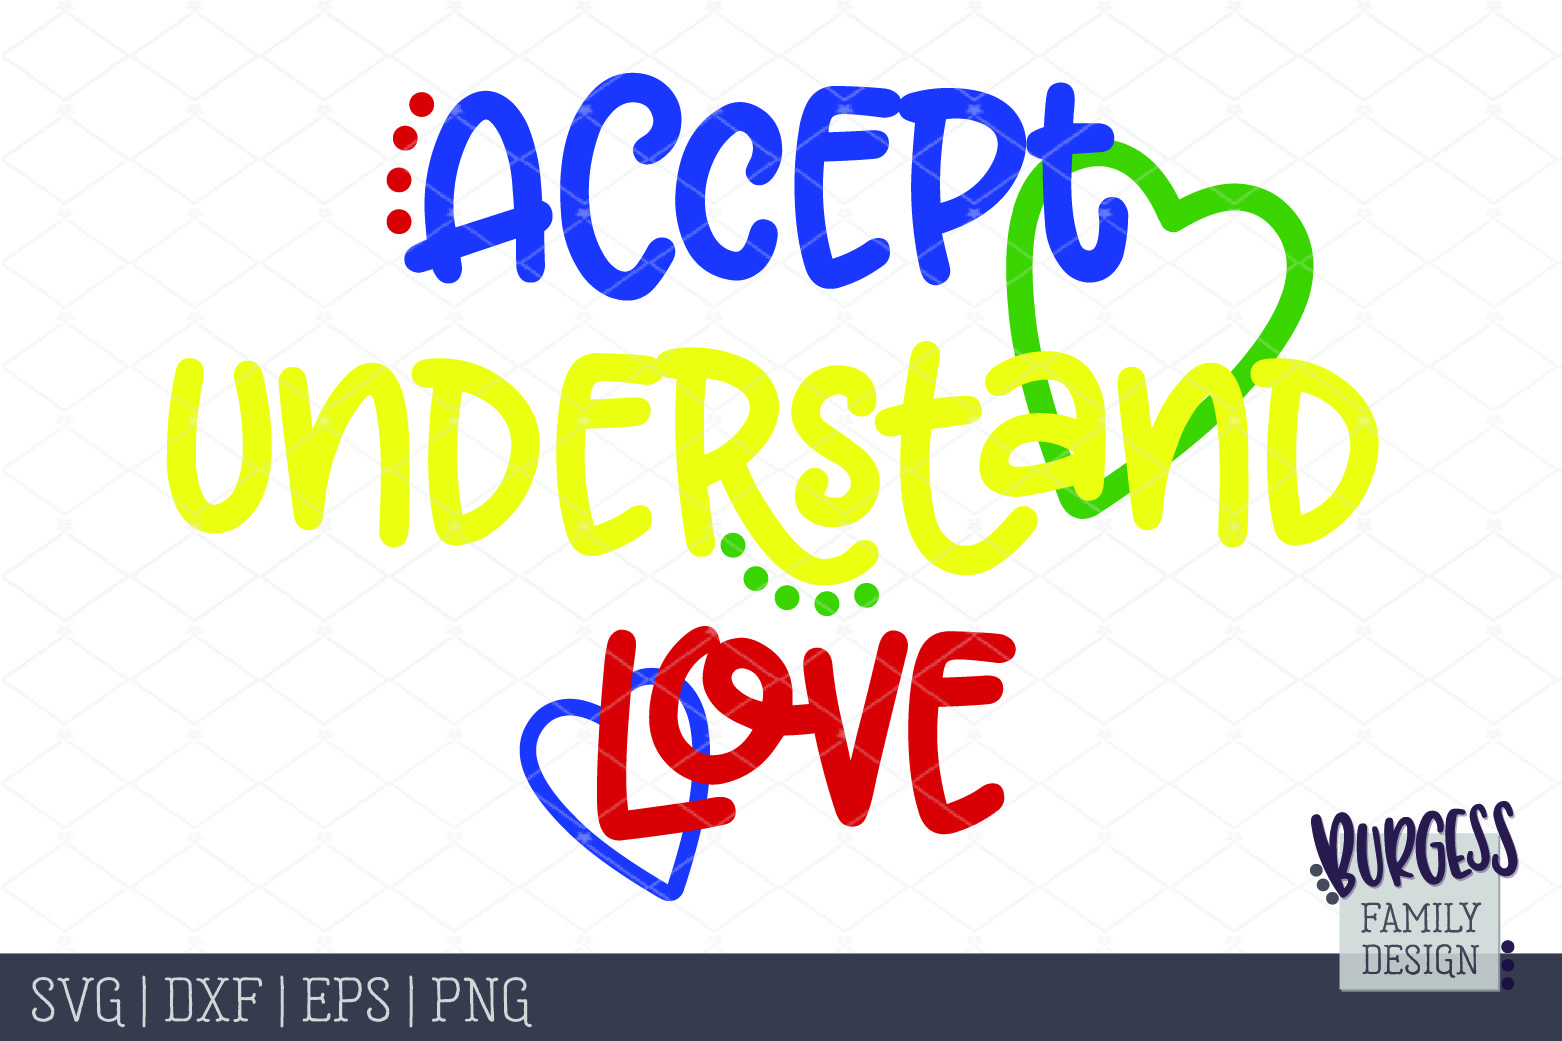 Accept, understand, love Autism awareness | SVG DXF EPS PNG example image 2